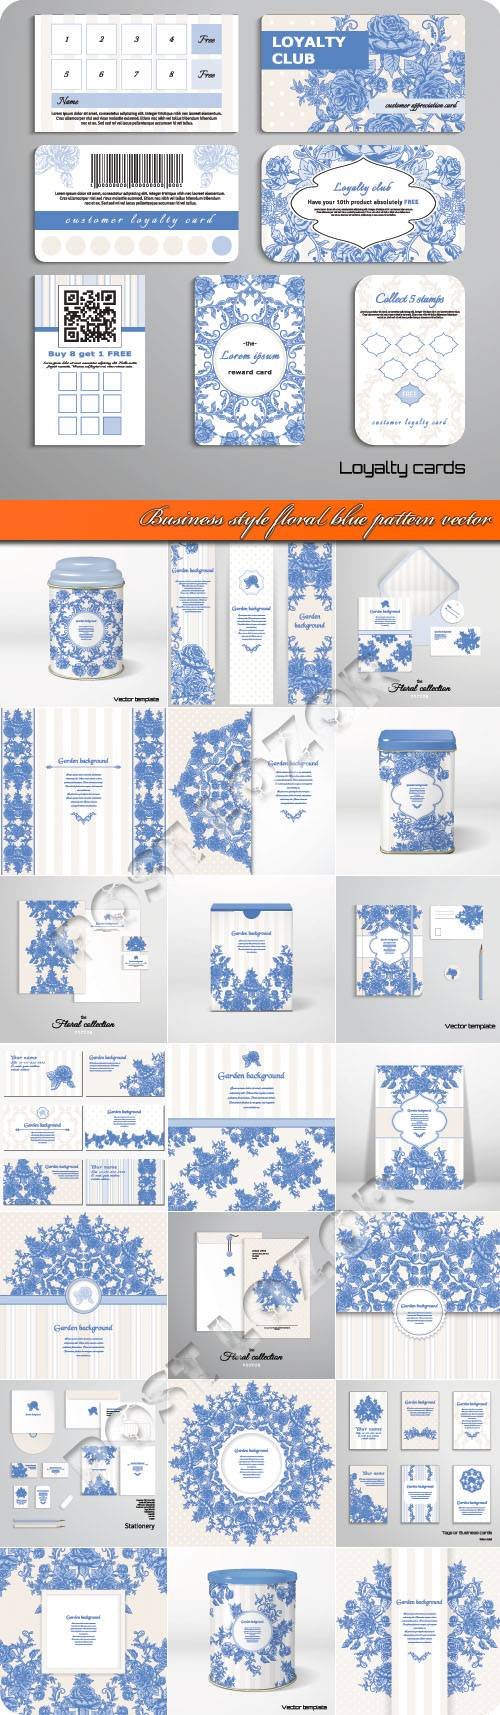 Business style floral blue pattern vector